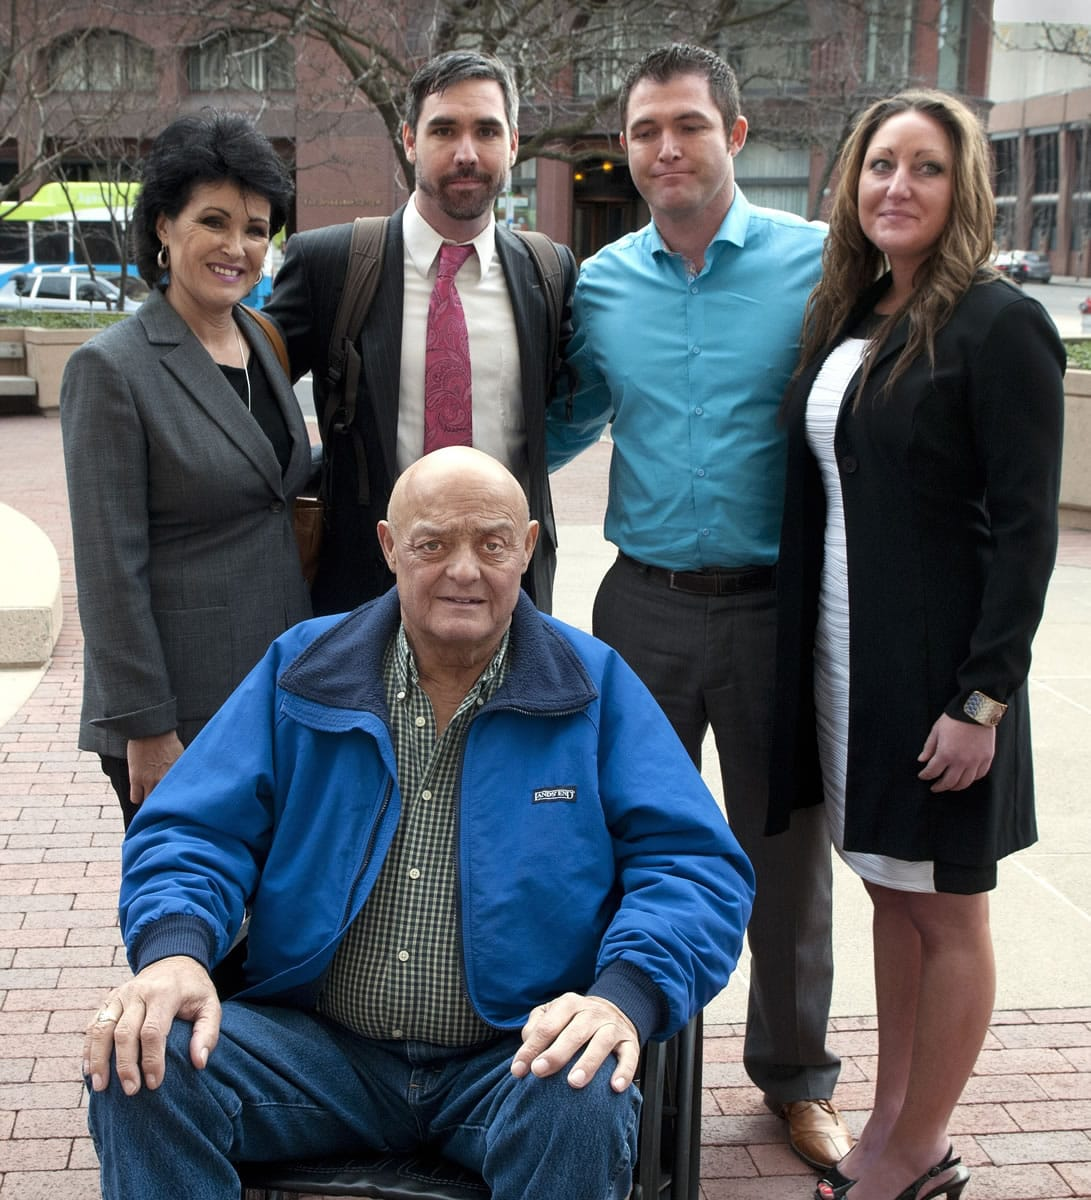 Larry Harvey is seated in front of, from left, Rhonda Lee Firestack-Harvey, Jason Zucker, Rolland Gregg and Michelle Gregg outside the Thomas S. Foley United States Courthouse in Spokane. The Justice Department has dropped its case against Harvey, 70, who was charged in a marijuana grow after he was diagnosed with late-stage pancreatic cancer.